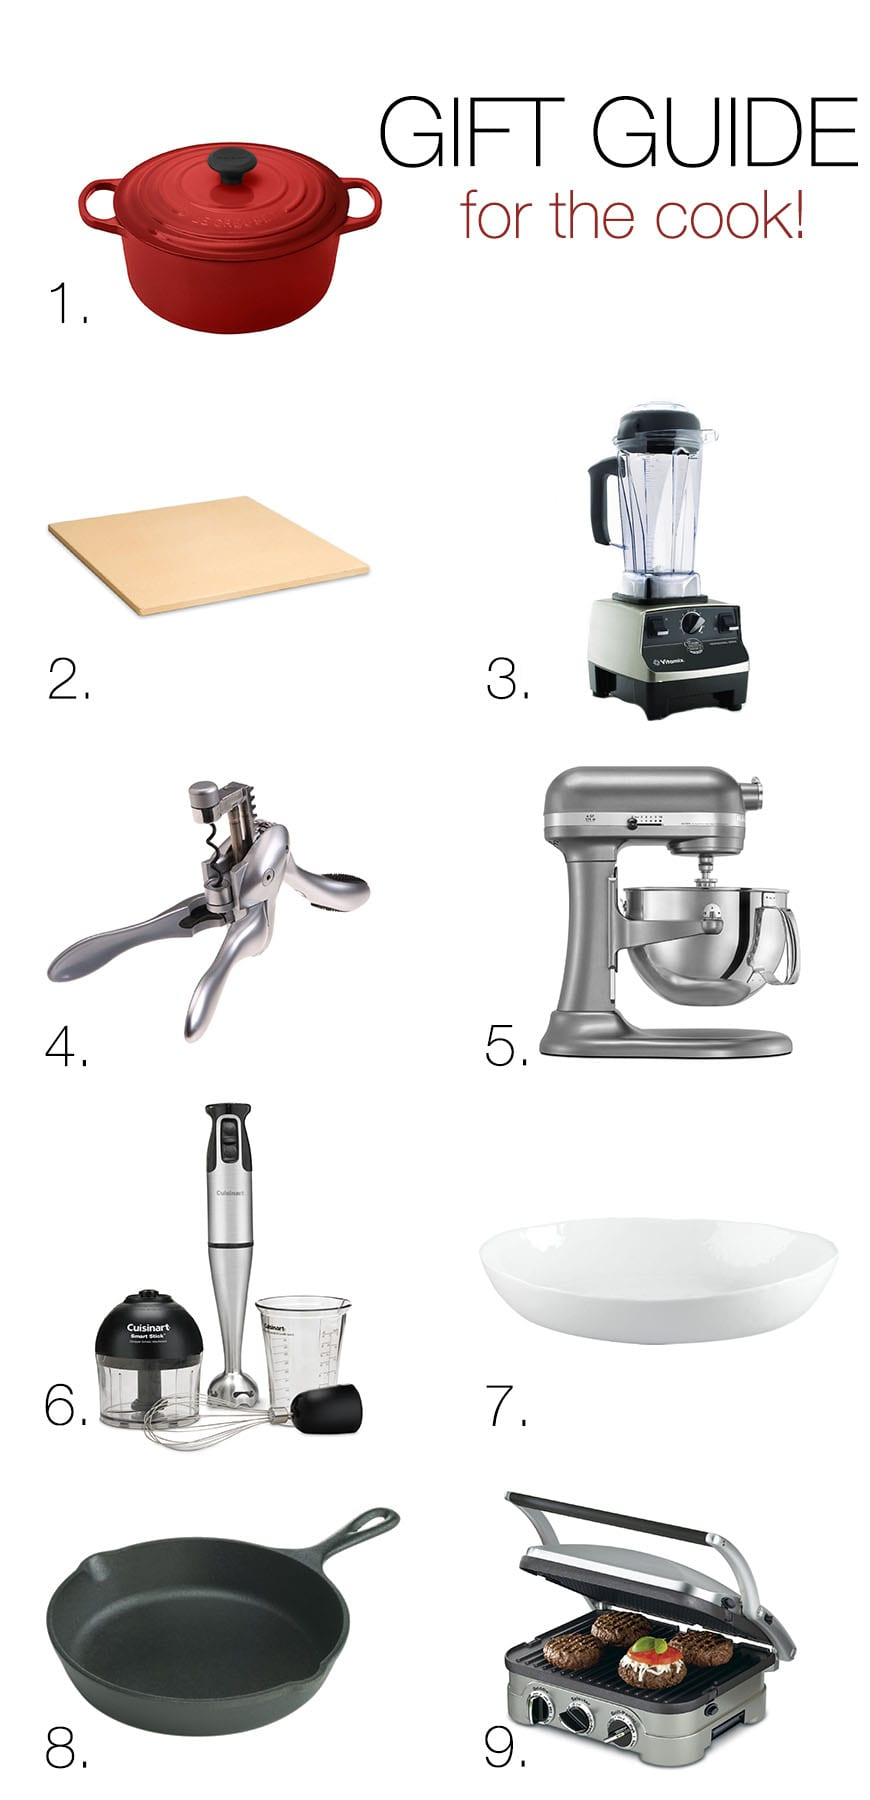 Last Minute Holiday Gift Guide - for the cook!